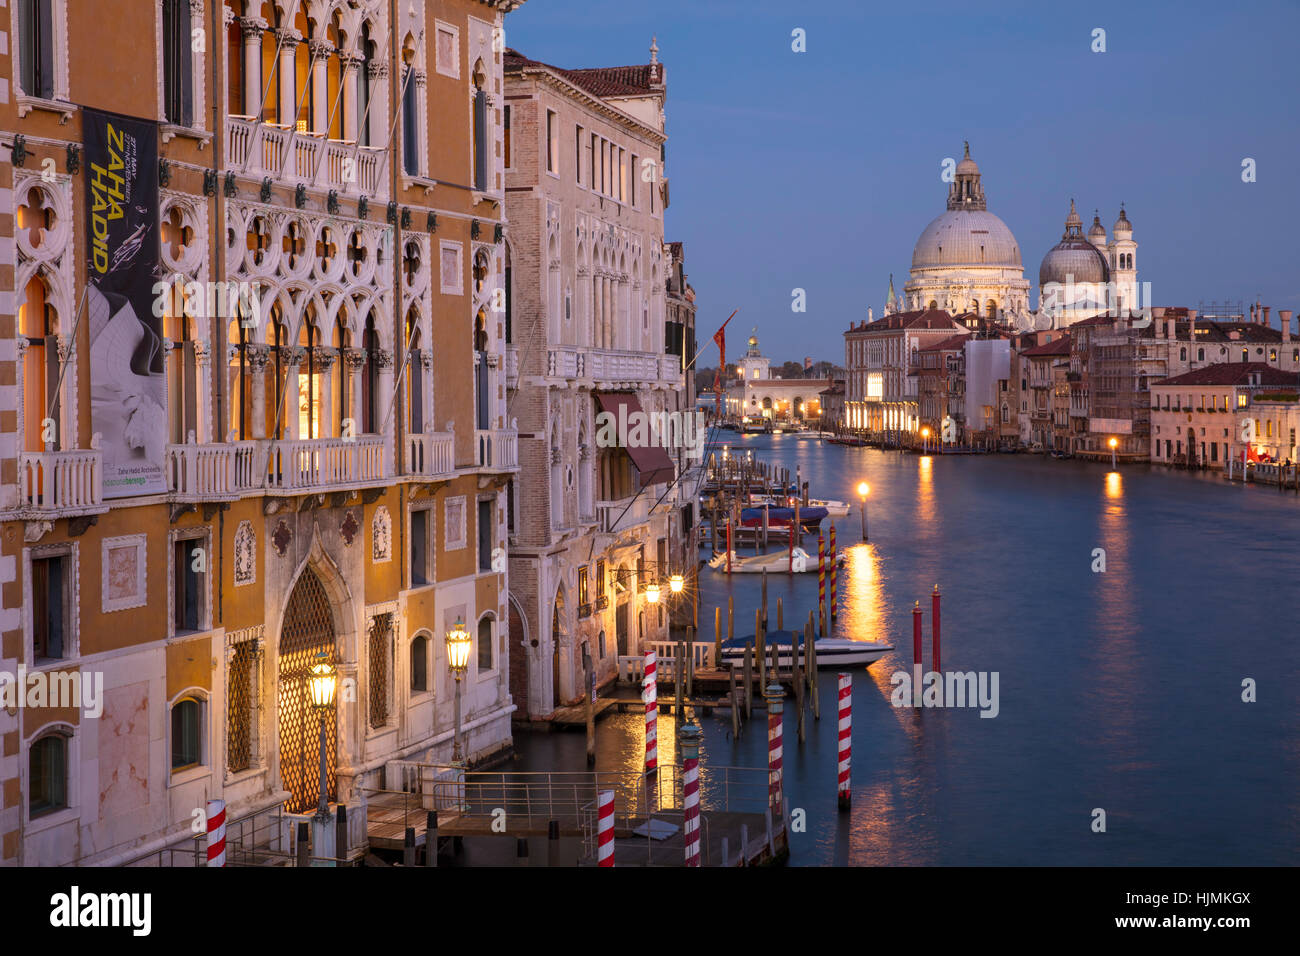 Twilgiht over the buildings along the Grand Canal with Santa Maria della Salute beyond, Venice, Veneto, Italy - Stock Image